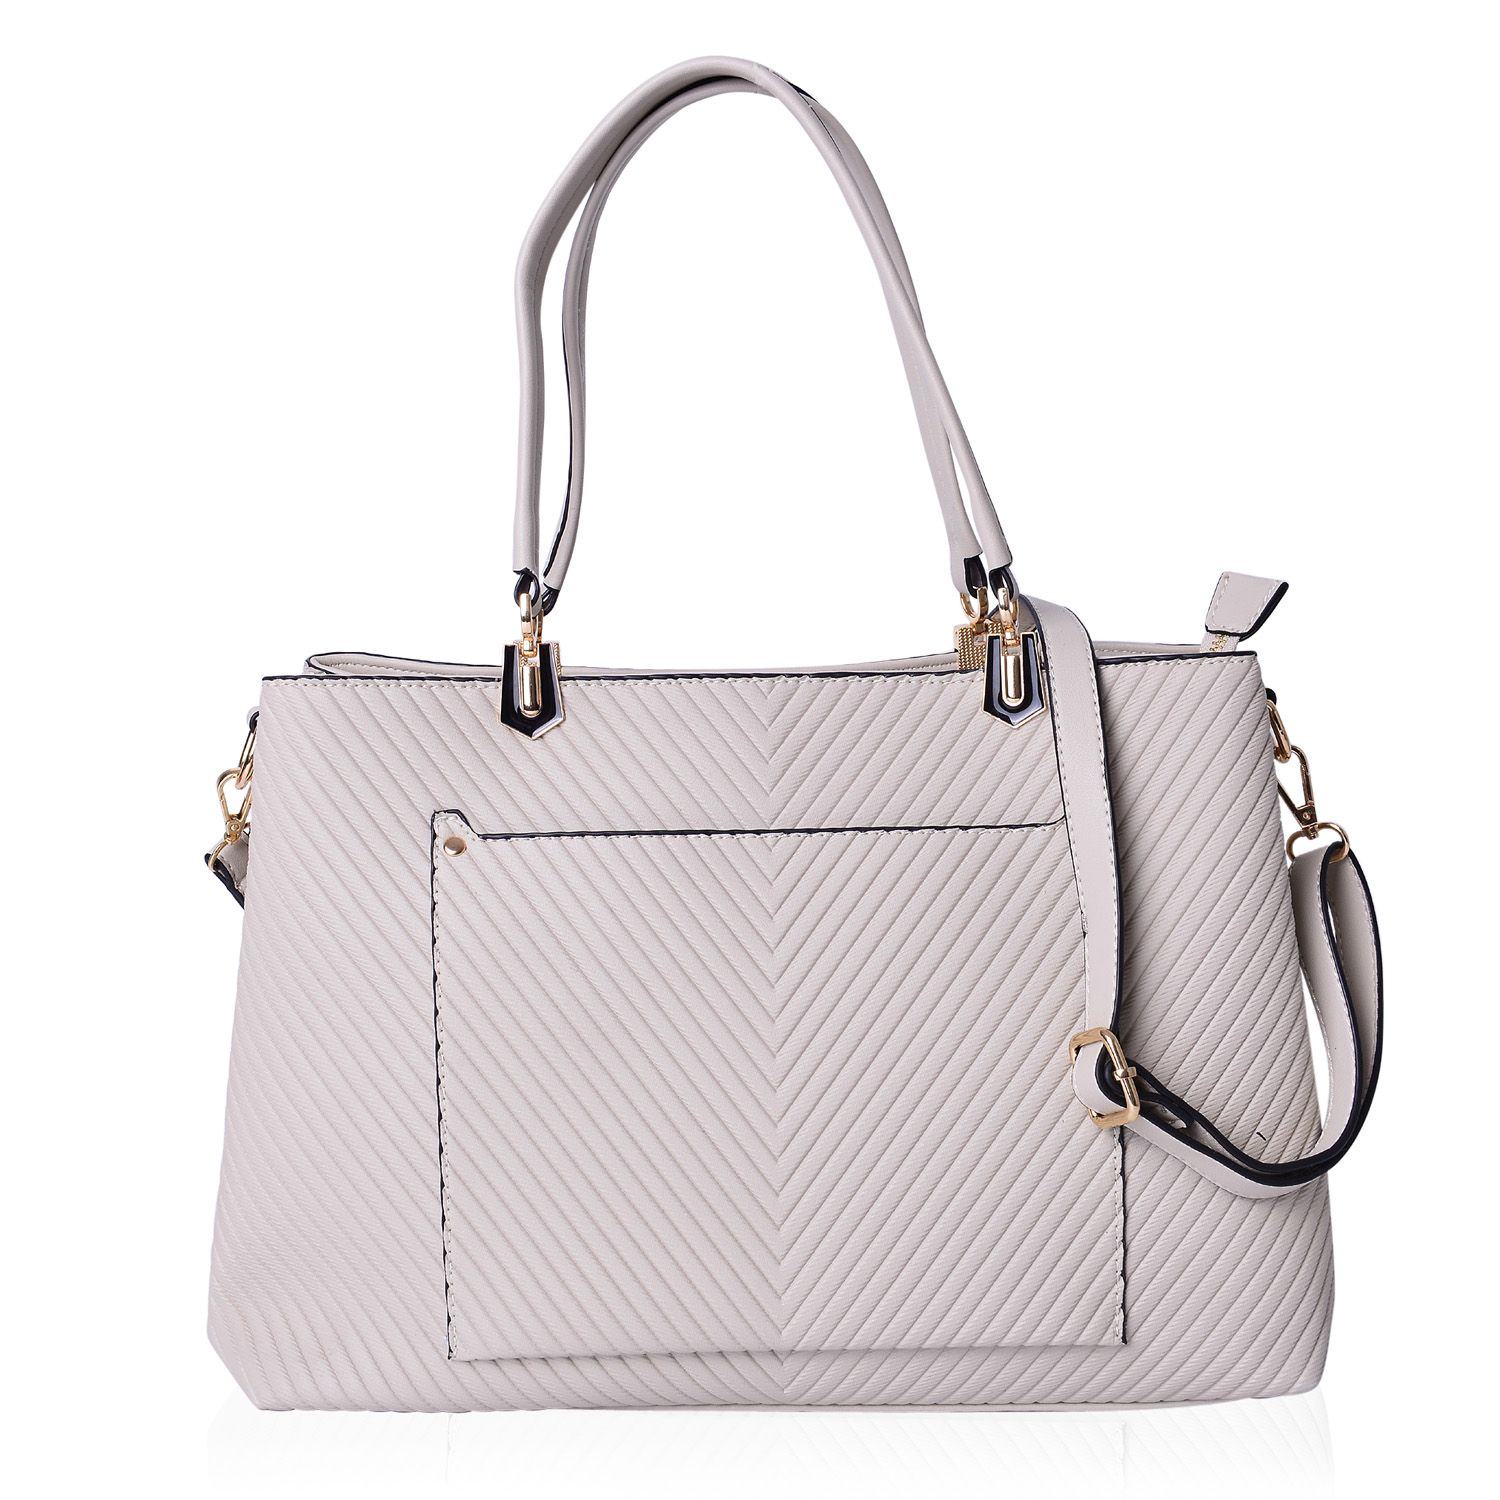 a093b36ebaf0 Cream Chevron Faux Leather Structured Tote Bag with Standing Studs and  Removable Shoulder Strap (15x5x10.5 in)